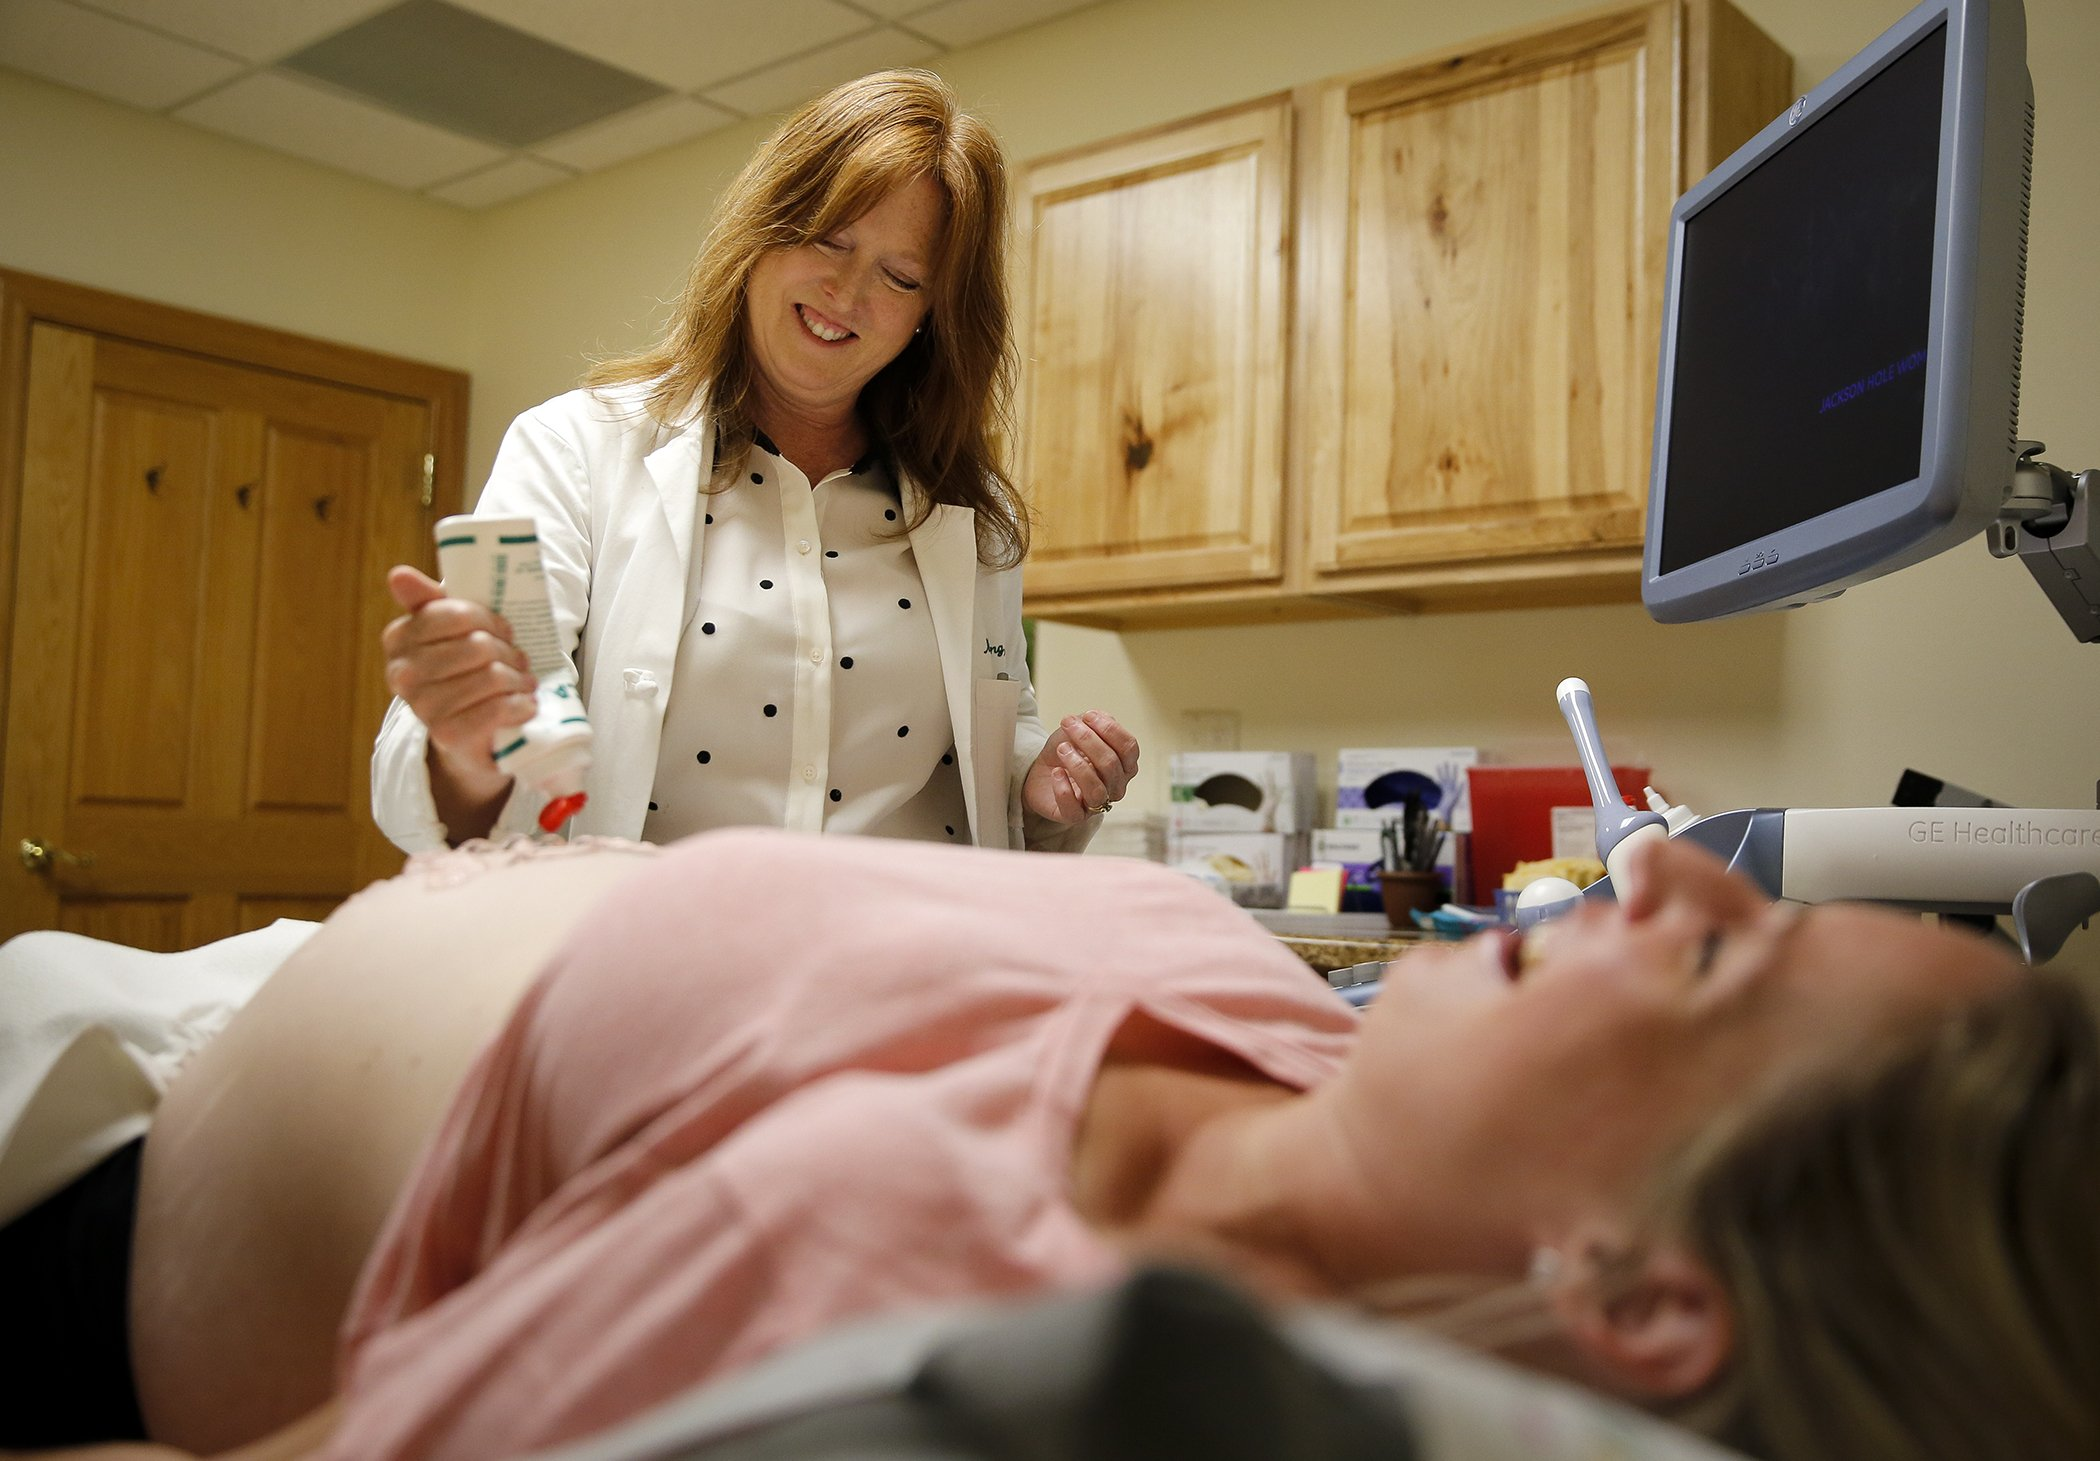 This pregnant woman did an ultrasound and her doctor was stunned